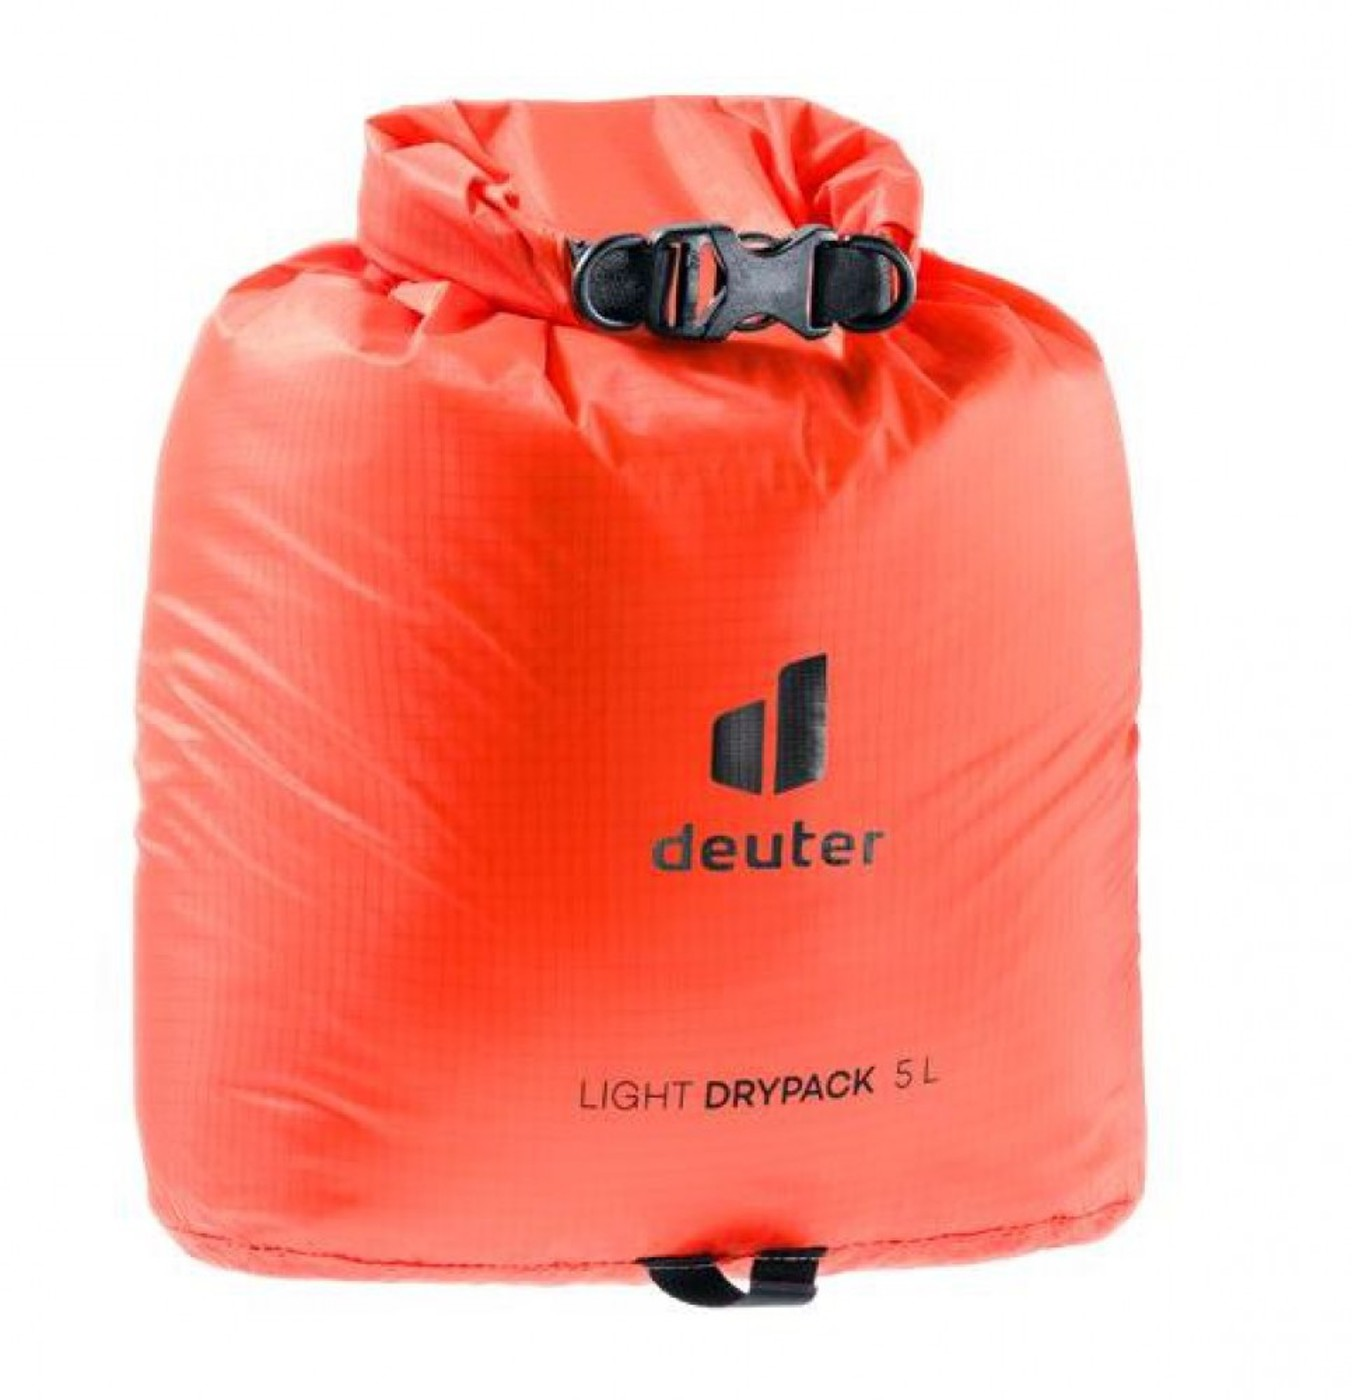 DEUTER Light Drypack 5